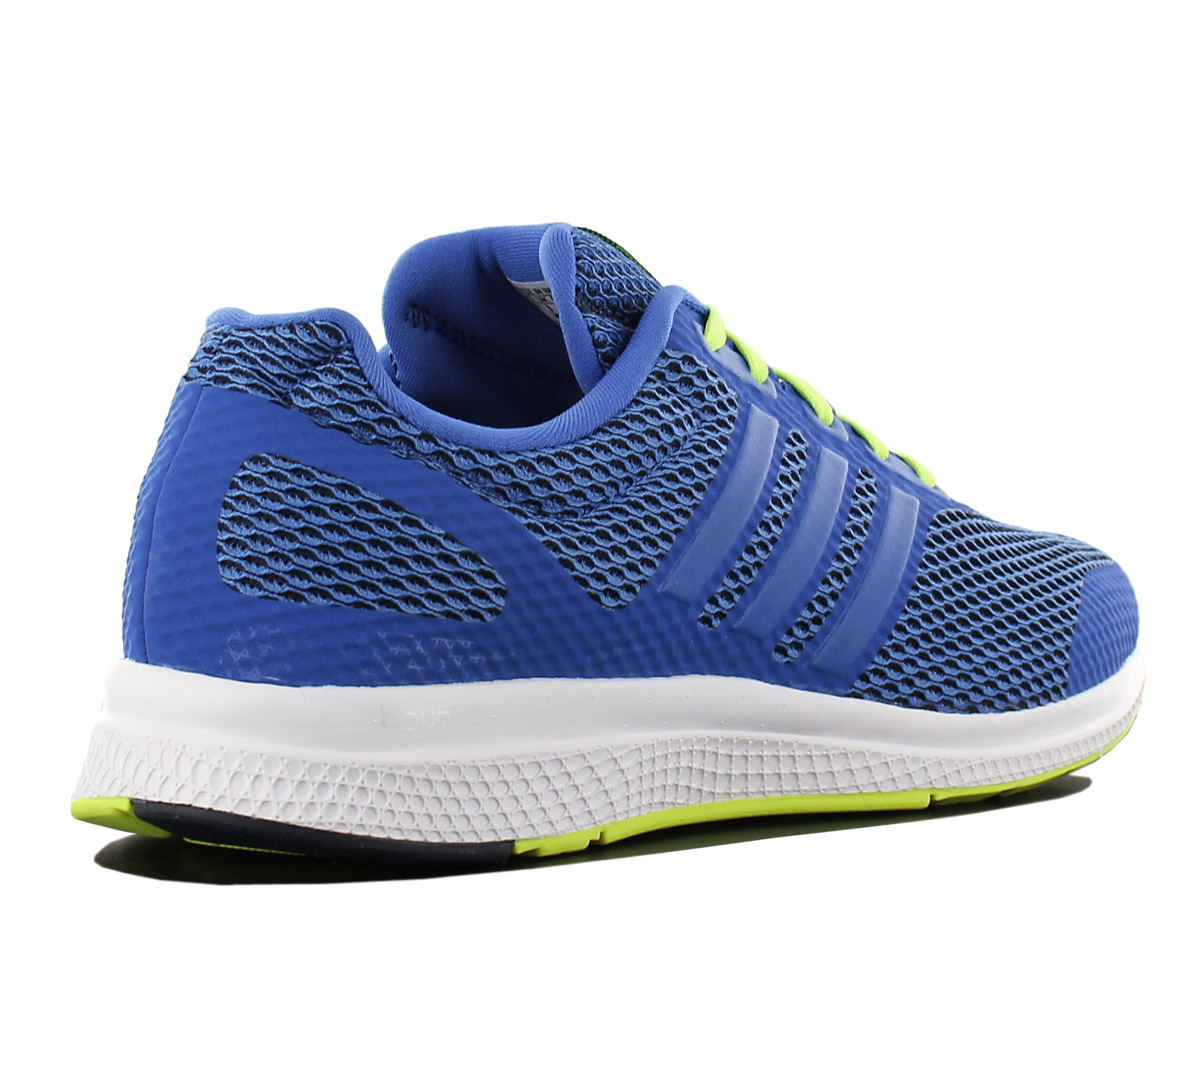 promo code 08b57 95009 Adidas Mana Bounce M MENS Running Shoes Fitness Sport Shoes